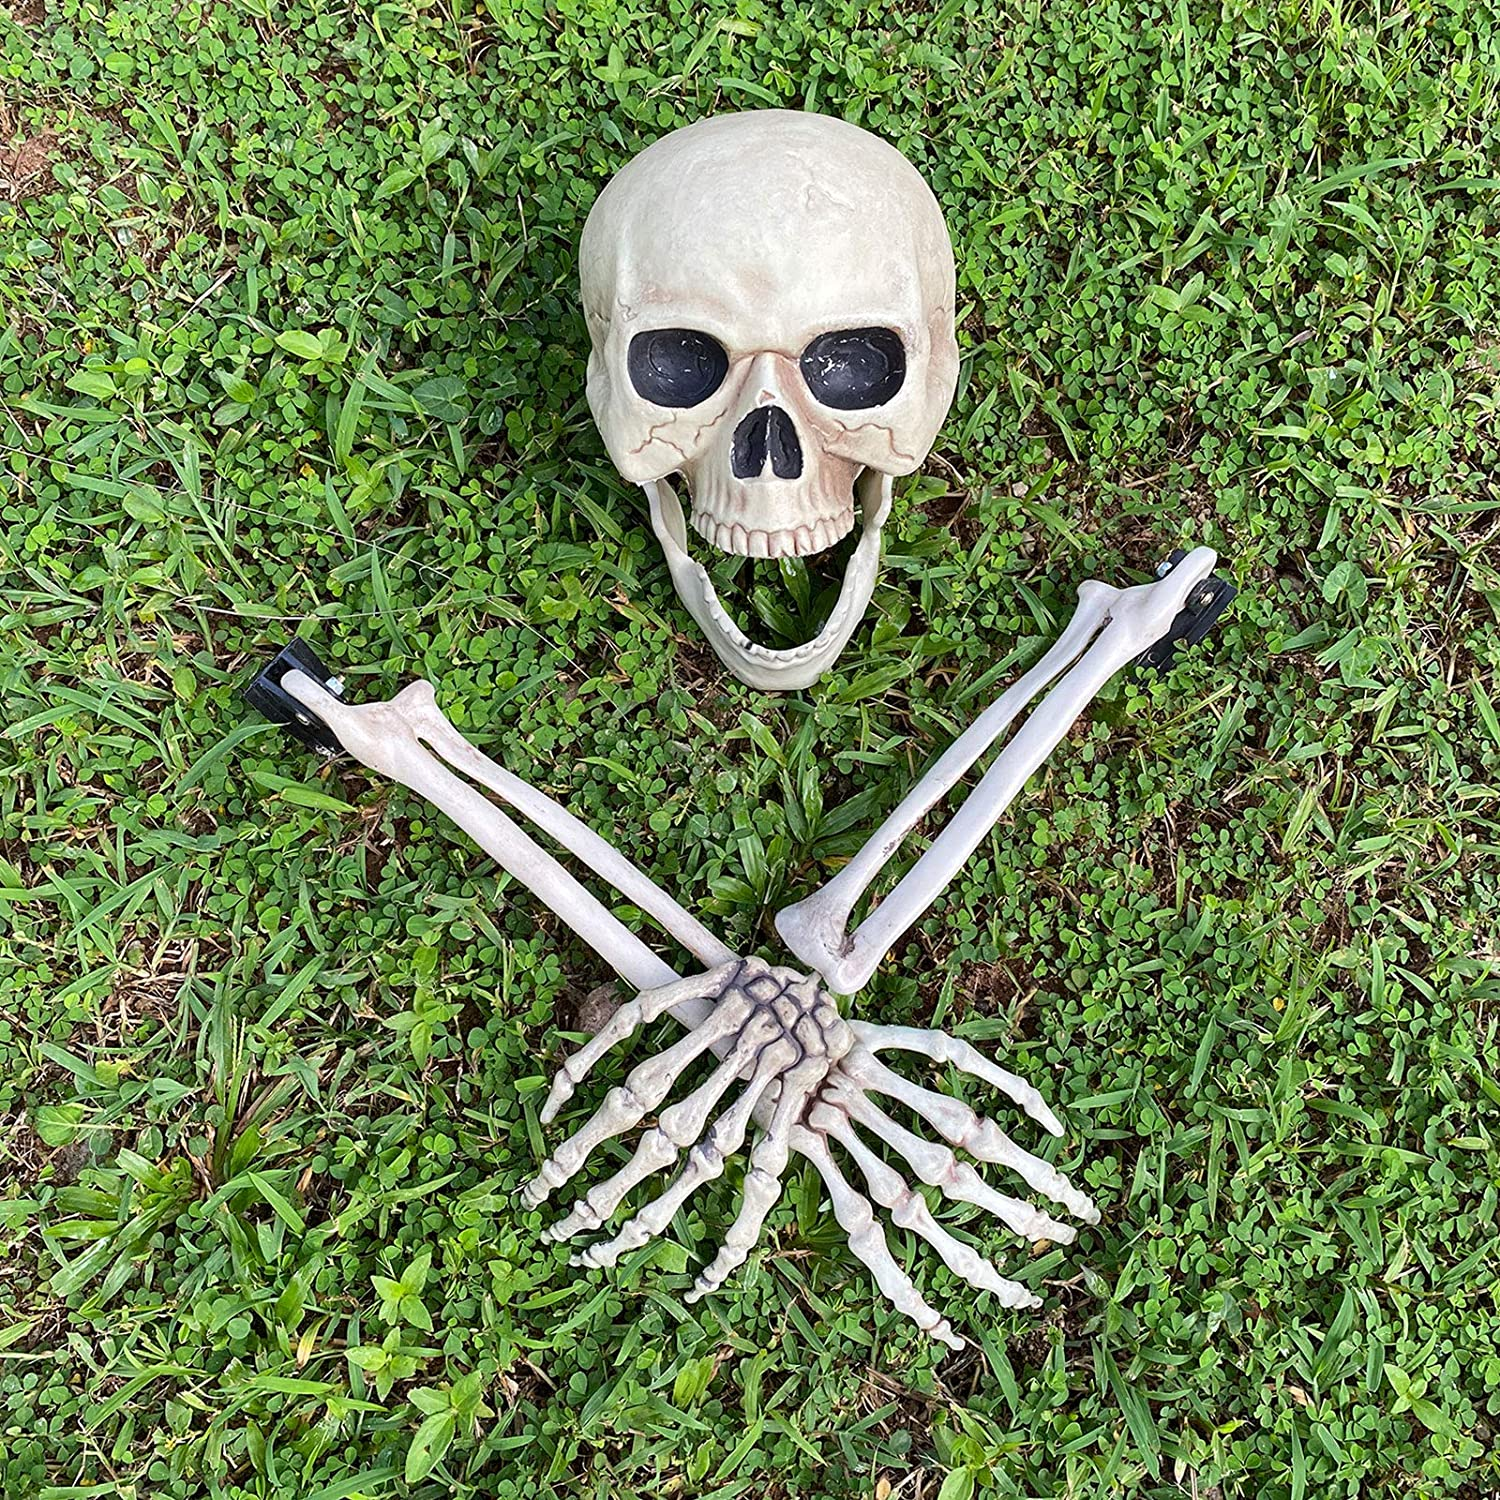 ALLADINBOX Halloween Creepy Graveyard Décor Groundbreaker Realistic Skeleton Bones and Skull(Include Skull, Hands and arms with Lawn Stakes) for Outdoor Party, Life Size